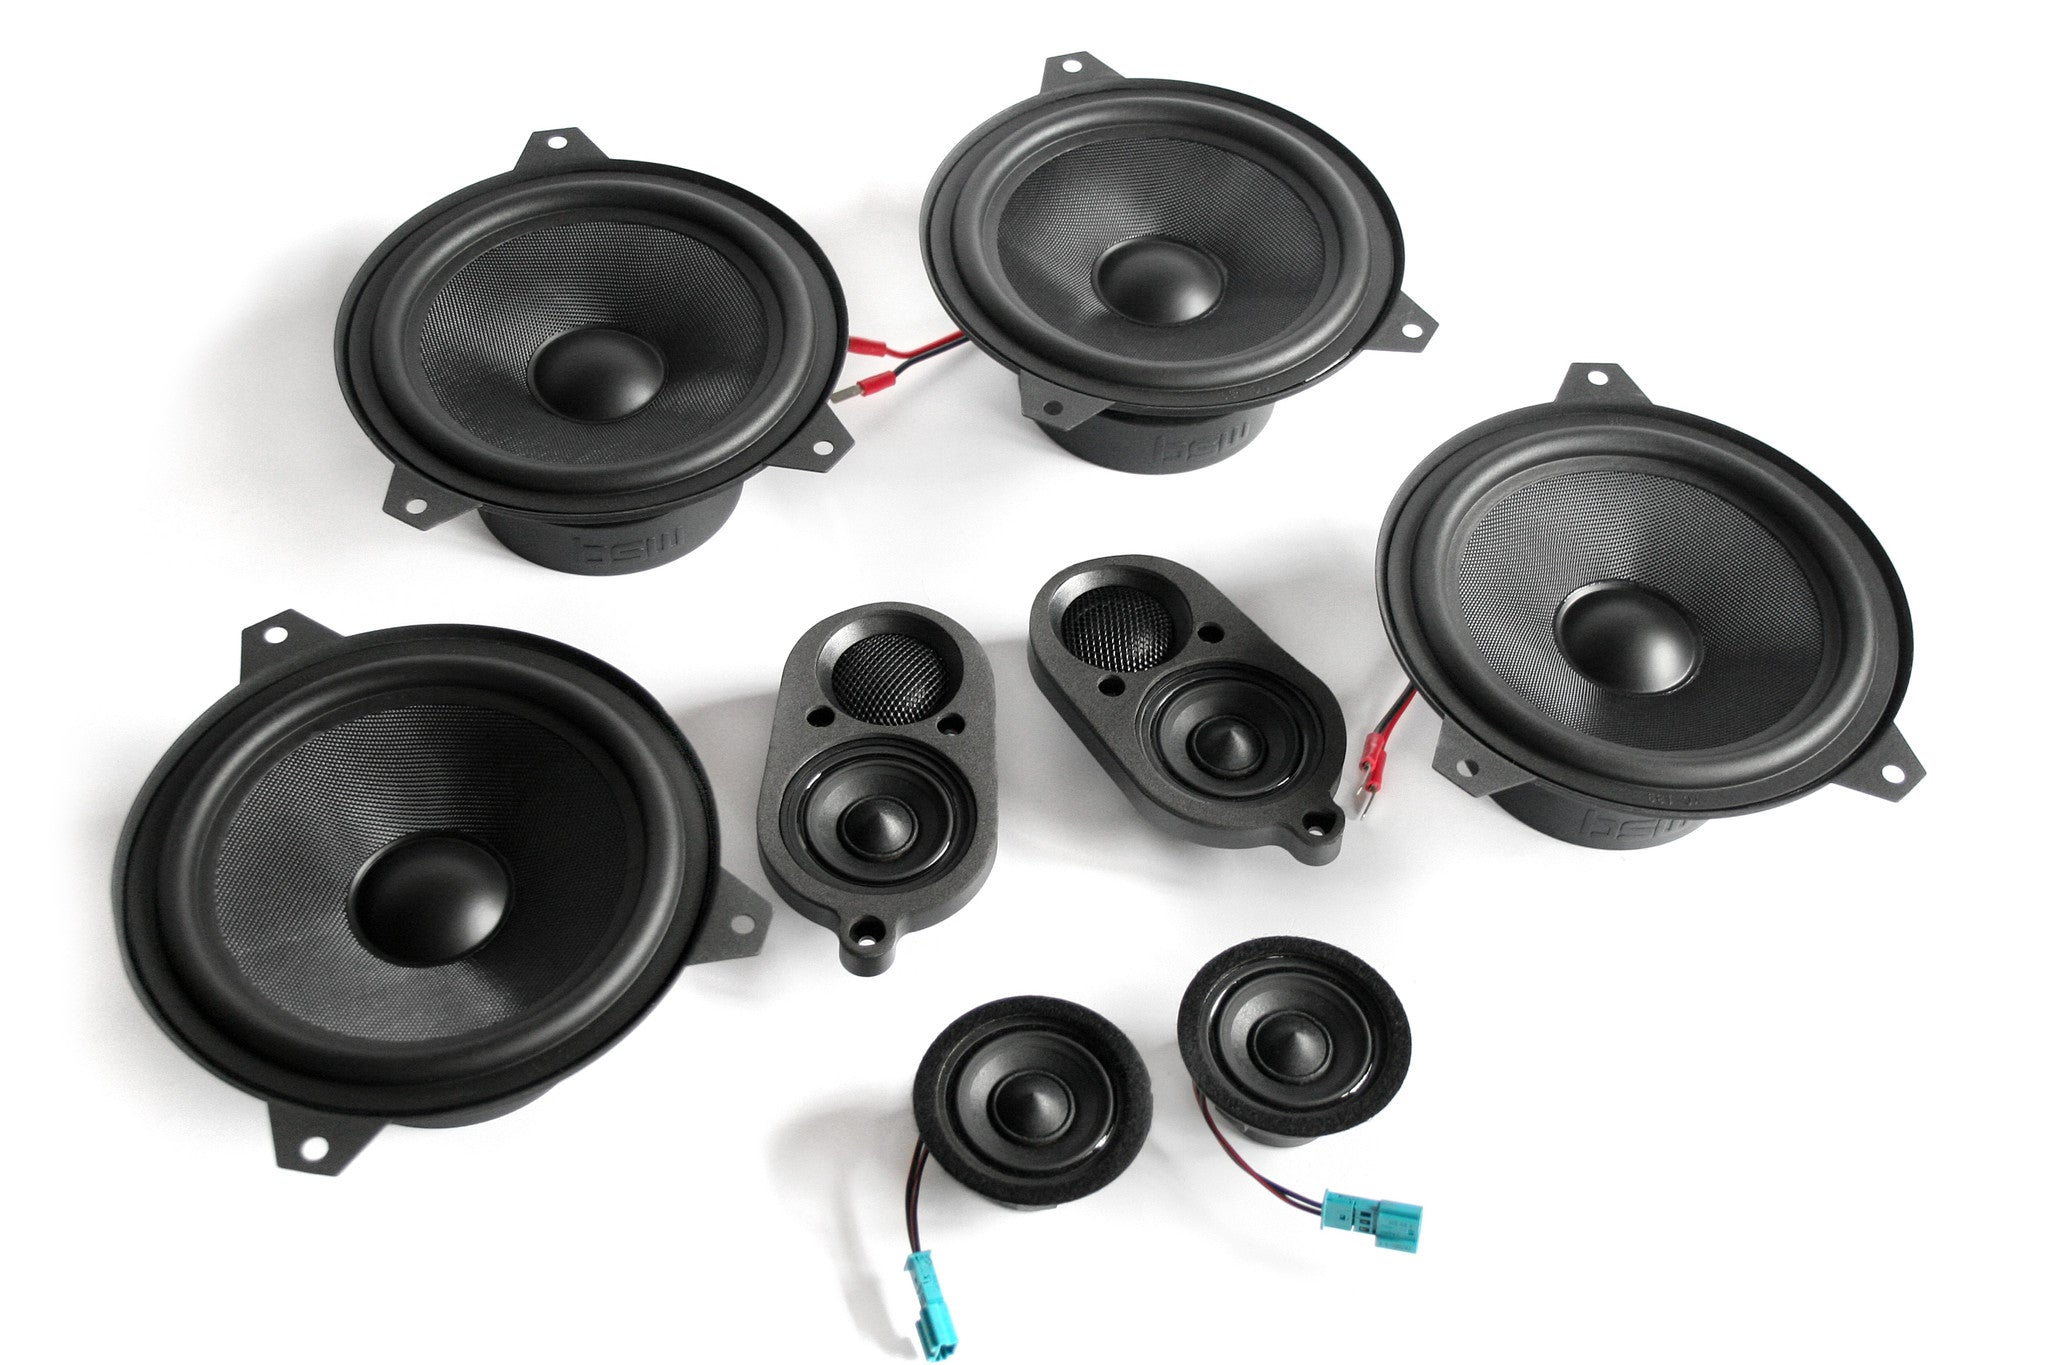 Bmw Speakers Mb Quart Qm2003 Amazoncouk Electronics Stage One Speaker Upgrade Kit Engineered For Your Specific 2048x1365